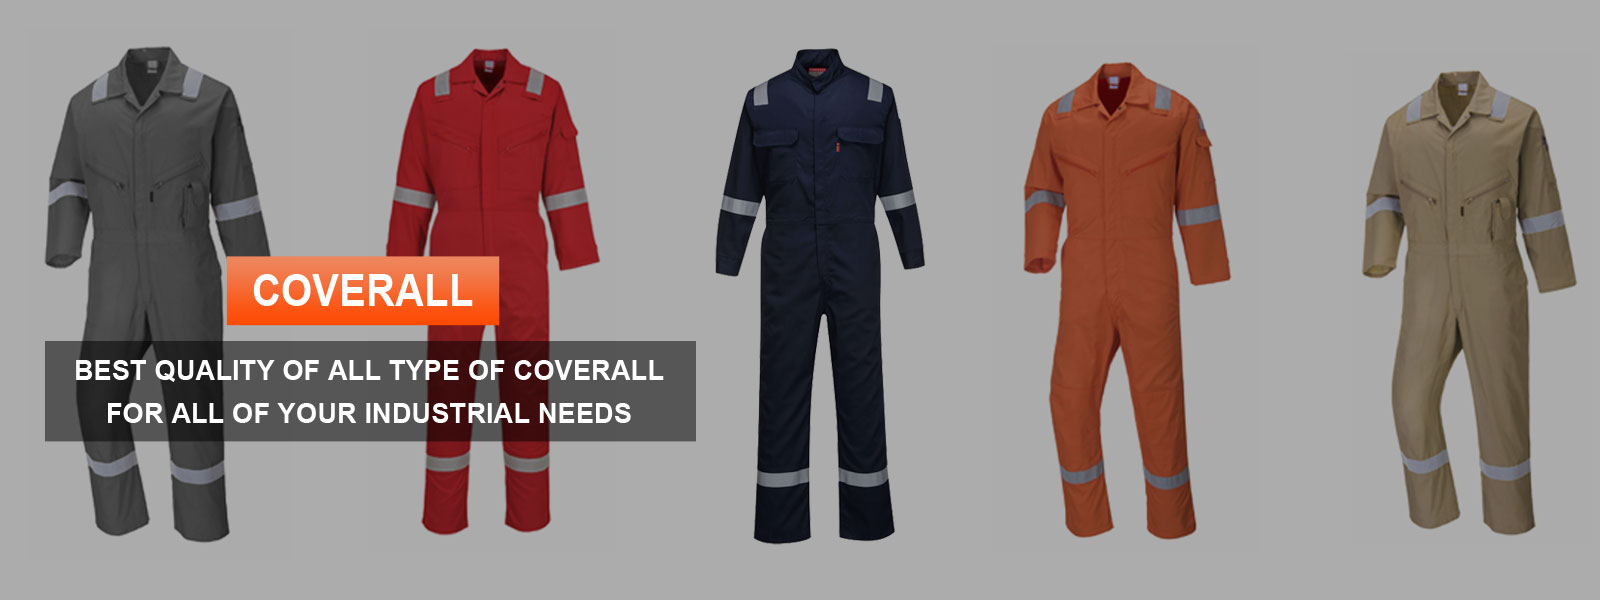 Coverall Manufacturers in Sikkim